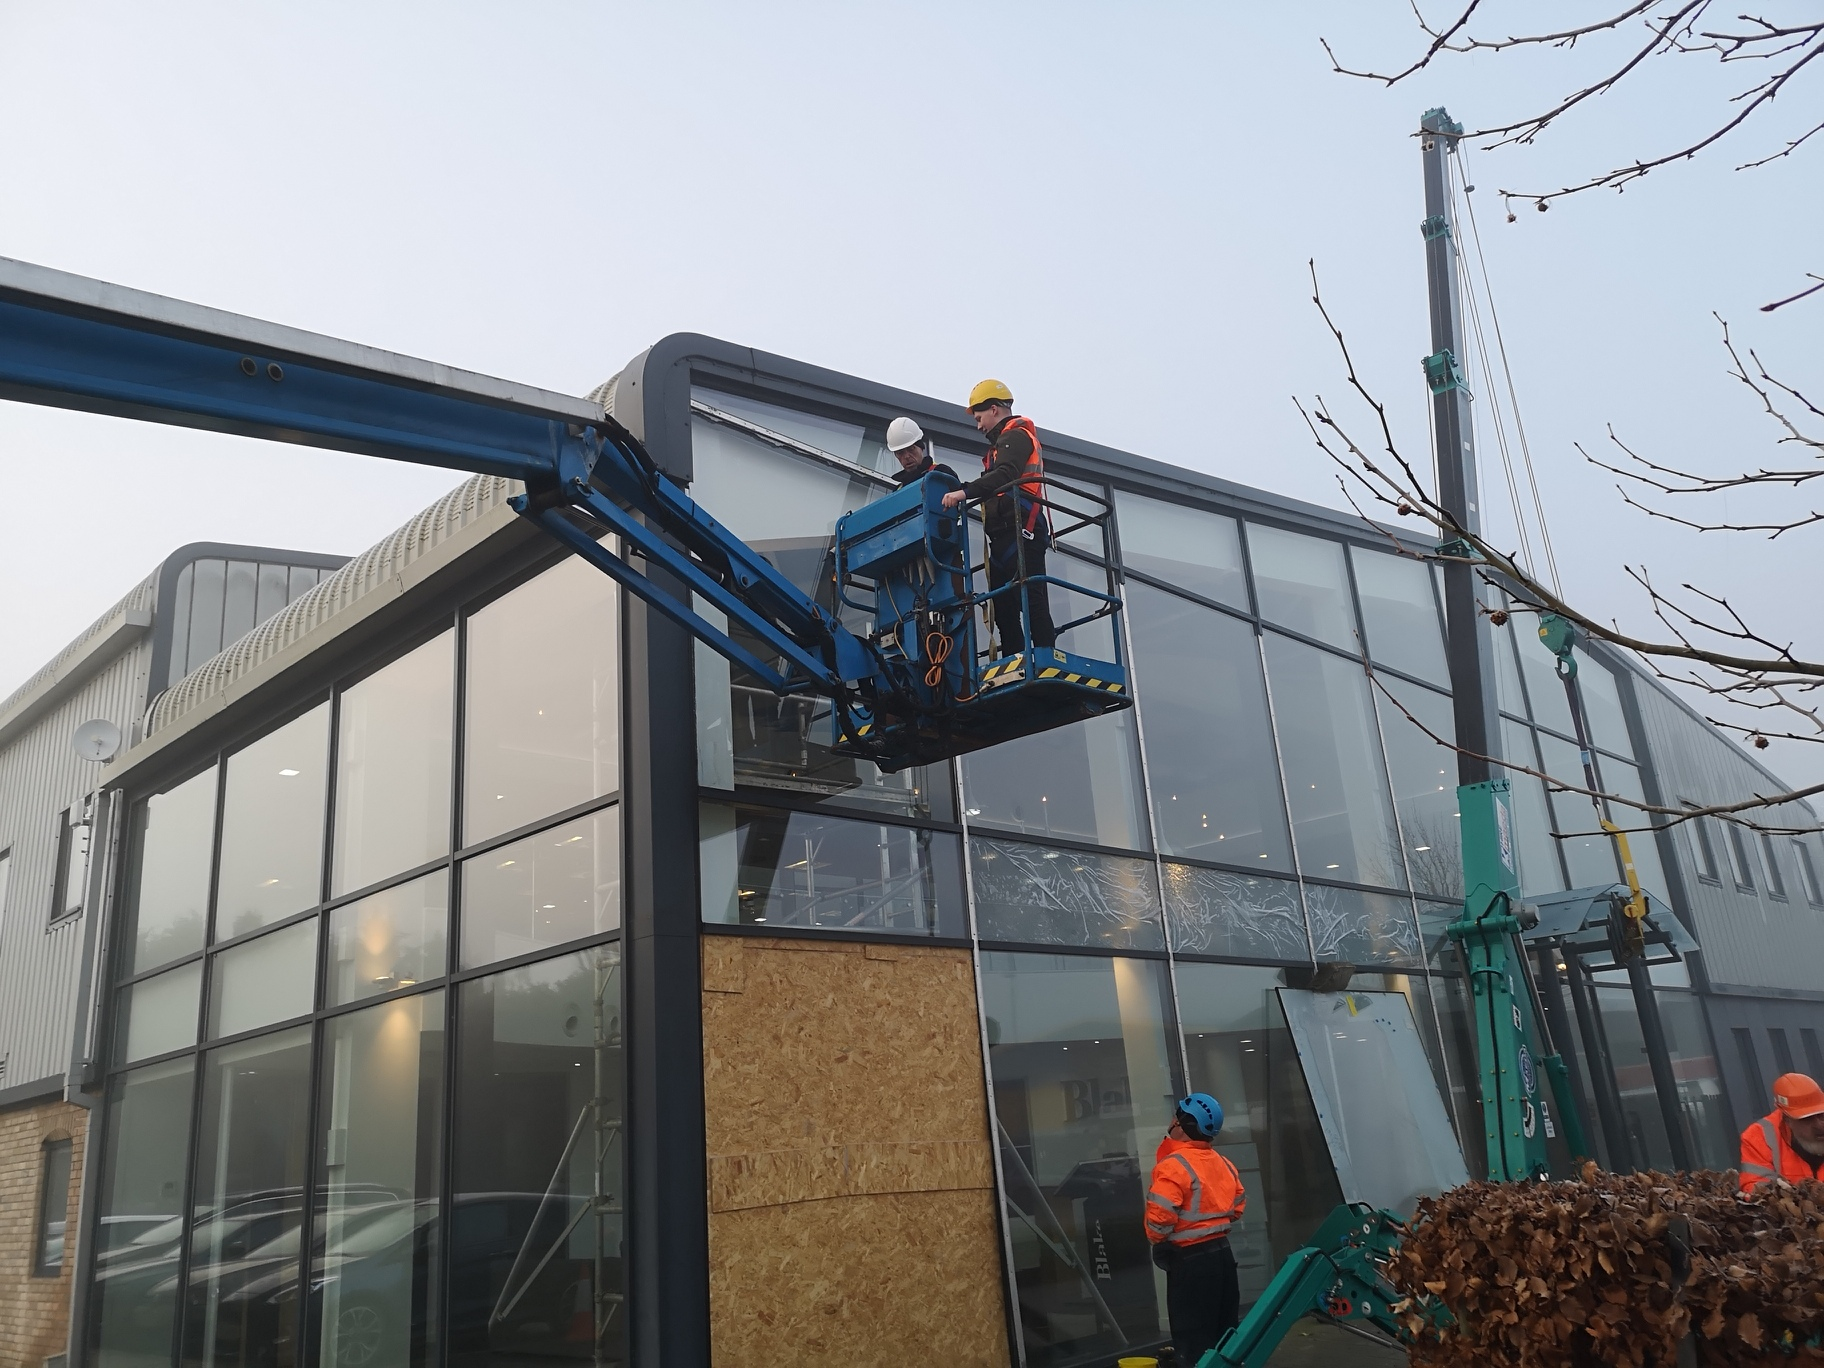 Maneuvering the glass into place